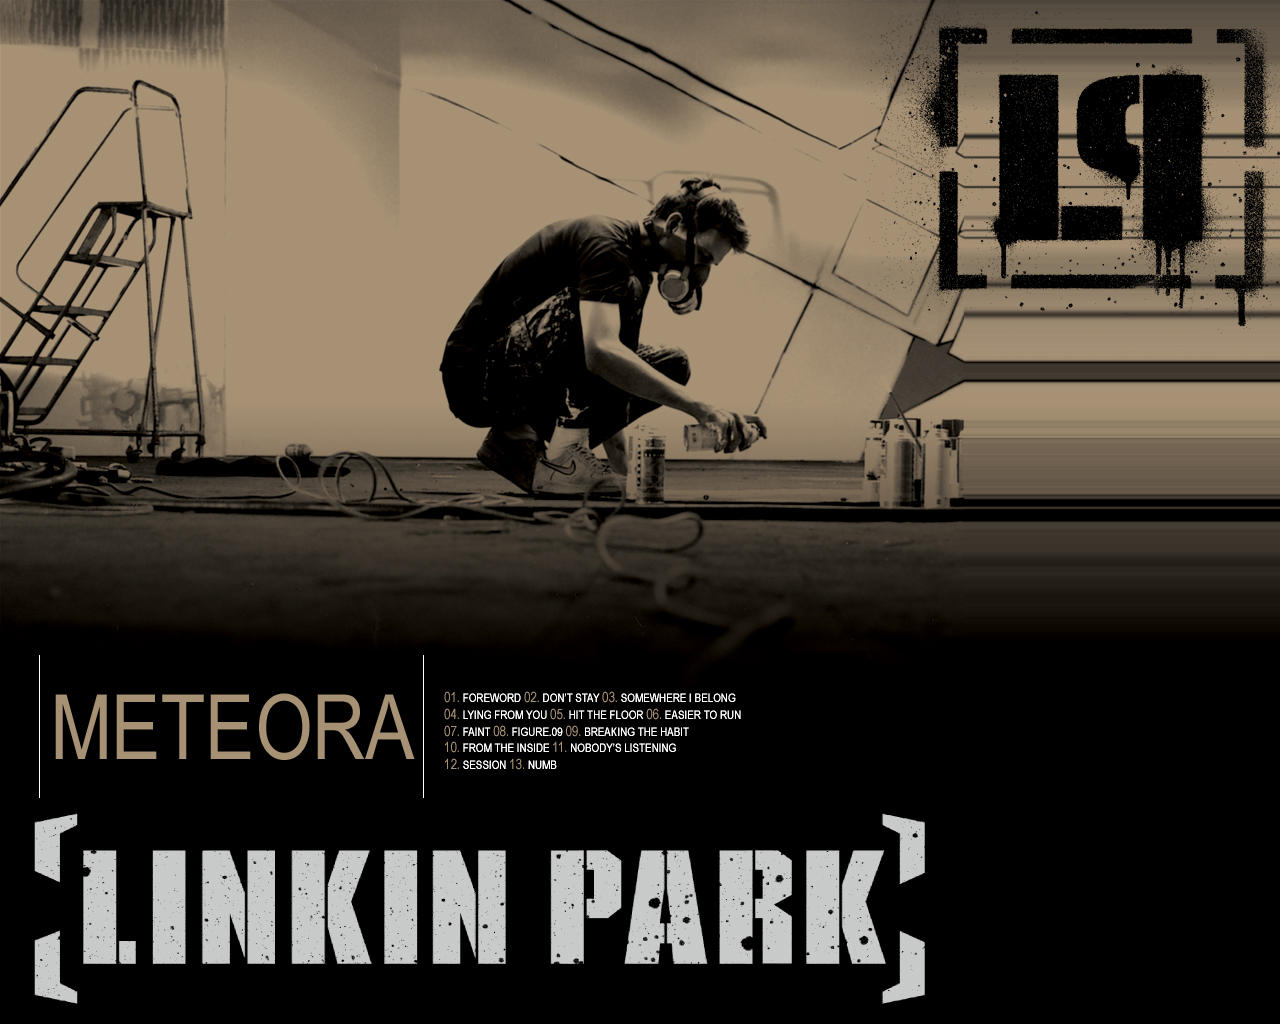 Meteora WP By Neographixx By Linkinparkfans Meteora WP By Neographixx By  Linkinparkfans